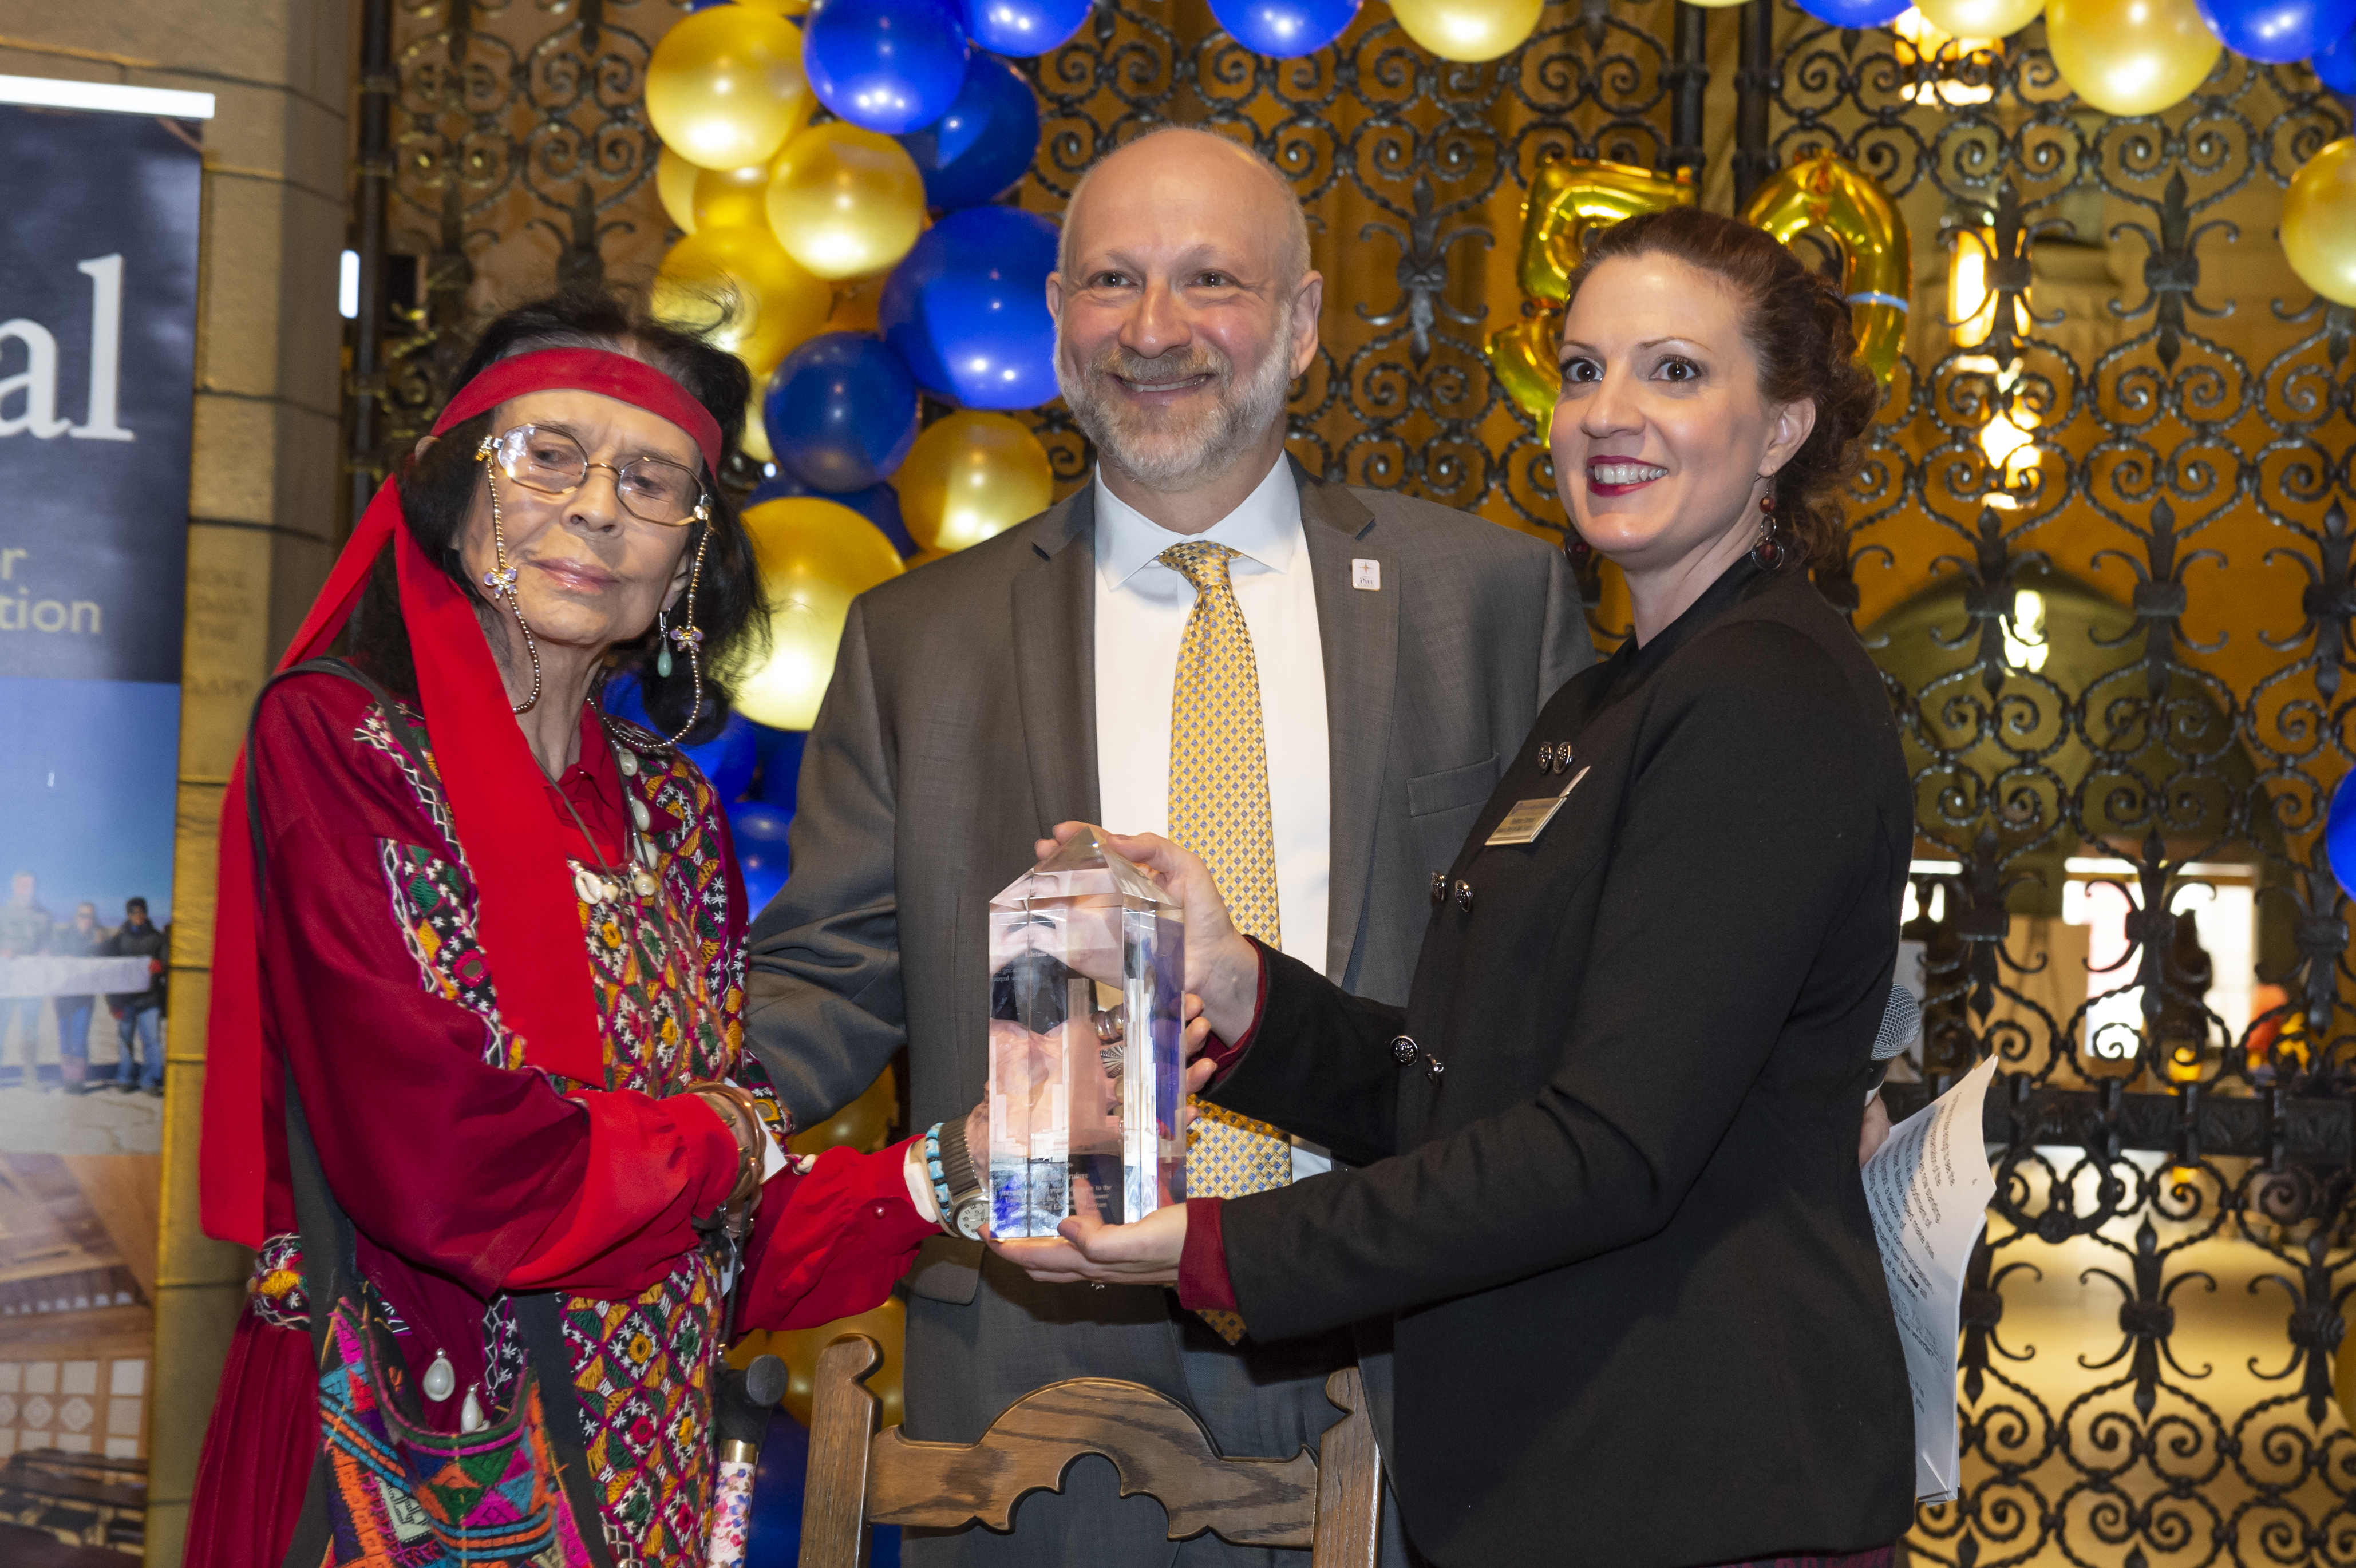 Maxine Bruhns receiving an award from Ariel Armony and Belkys Torres